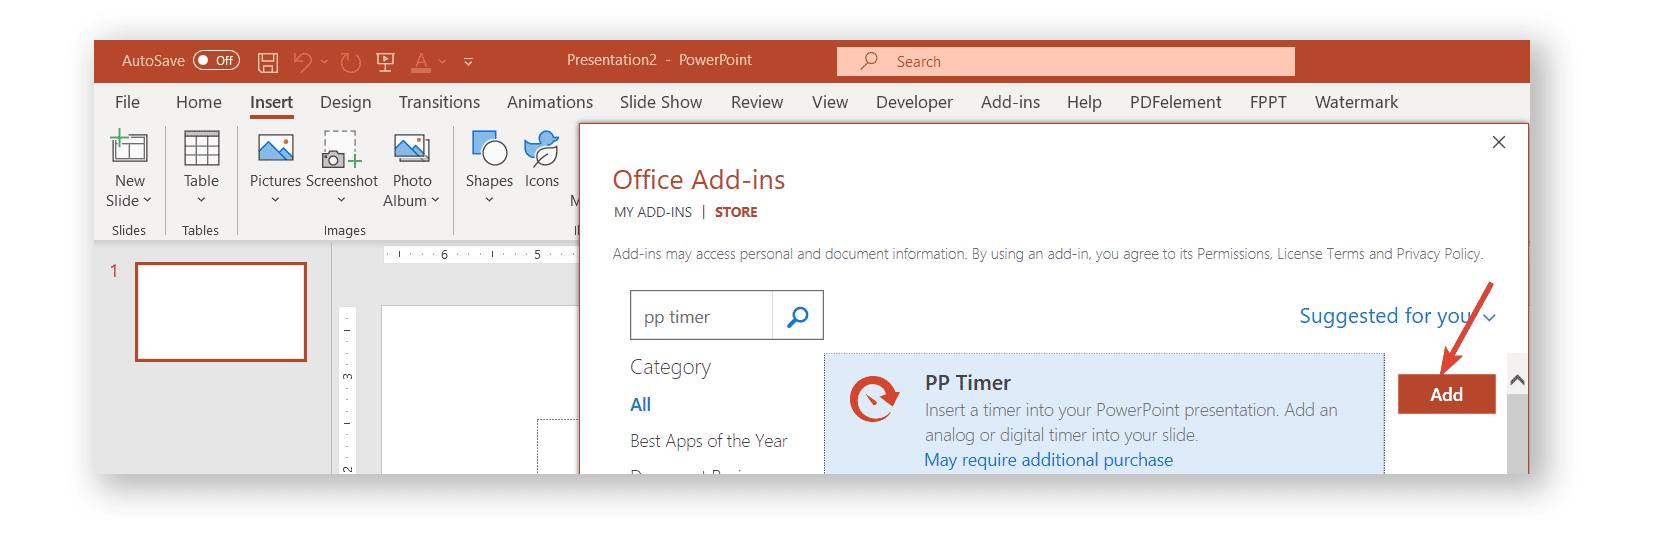 Add PPTimer from PowerPoint using Office Add Ins